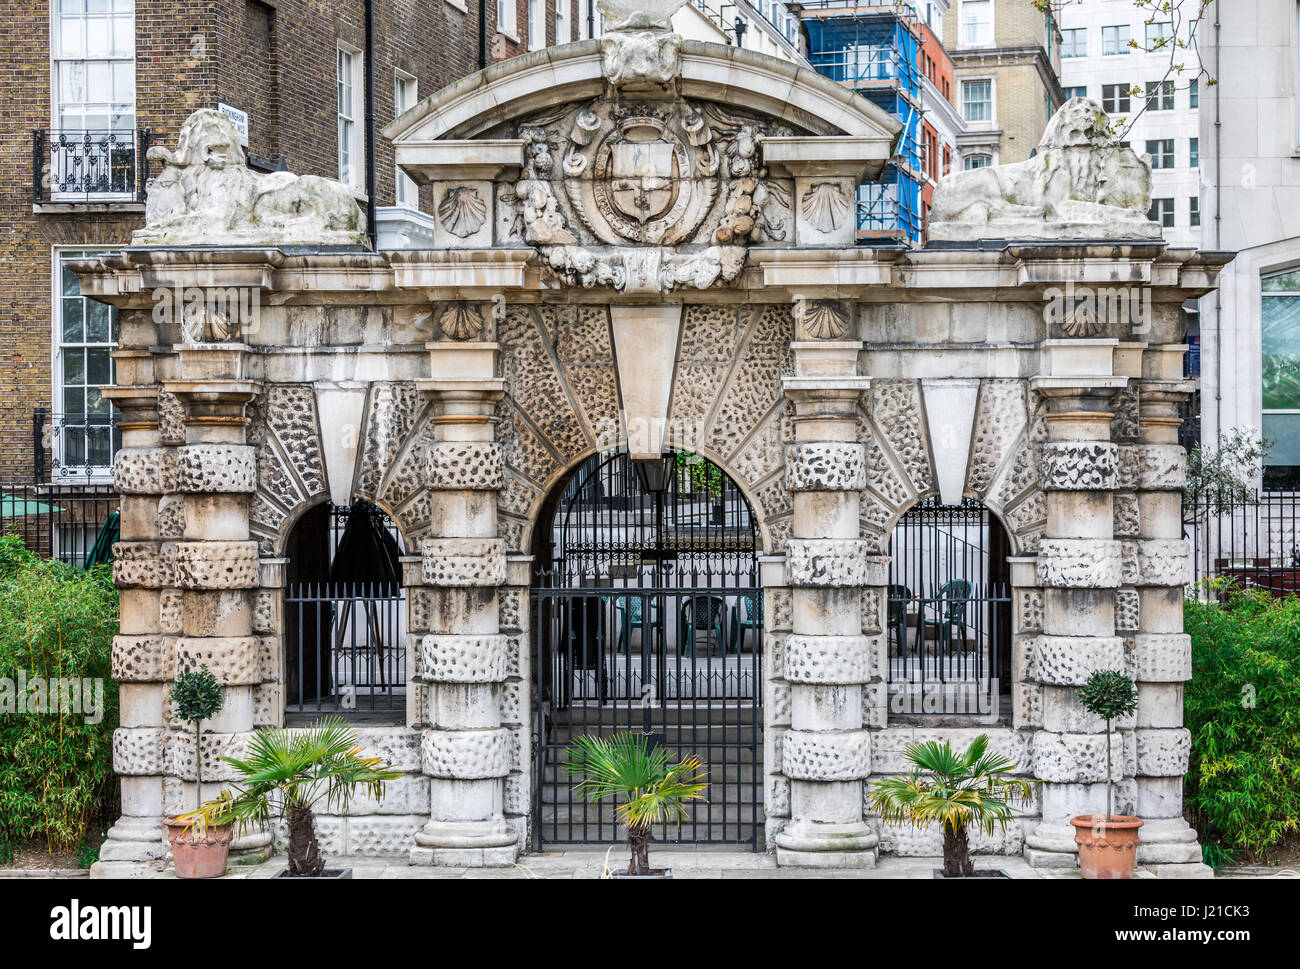 temple or elaborate gate in London - Stock Image